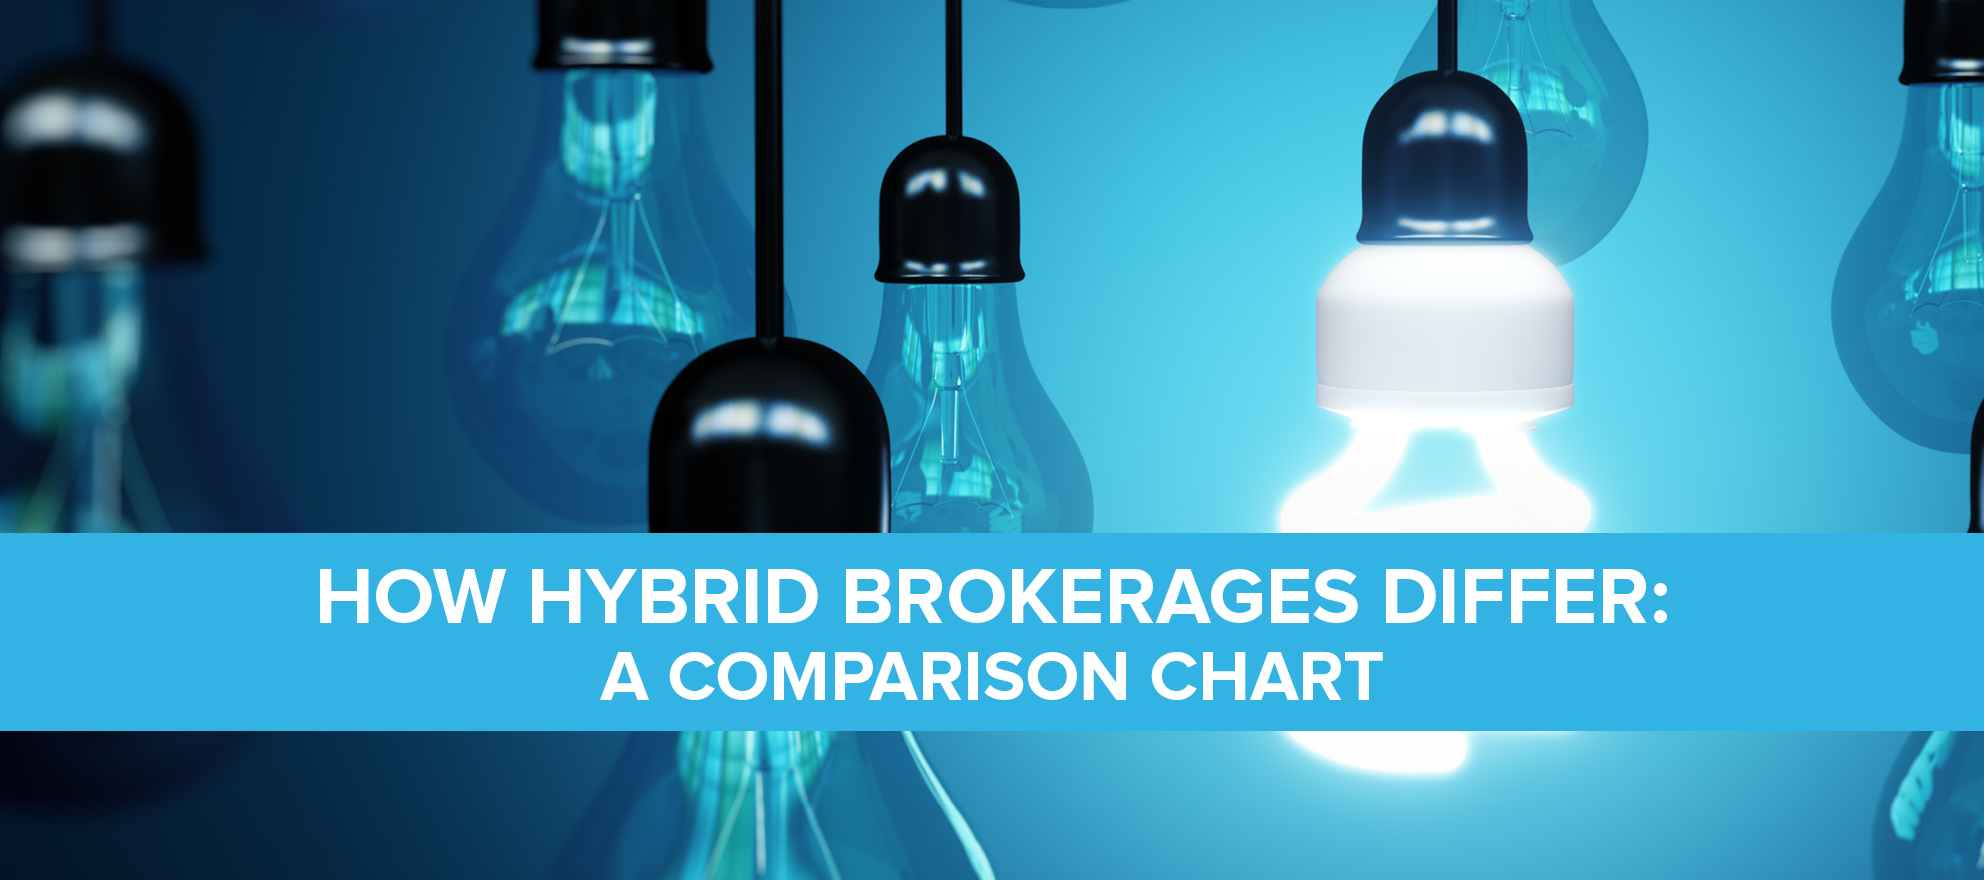 How hybrid brokerages differ: a comparison chart